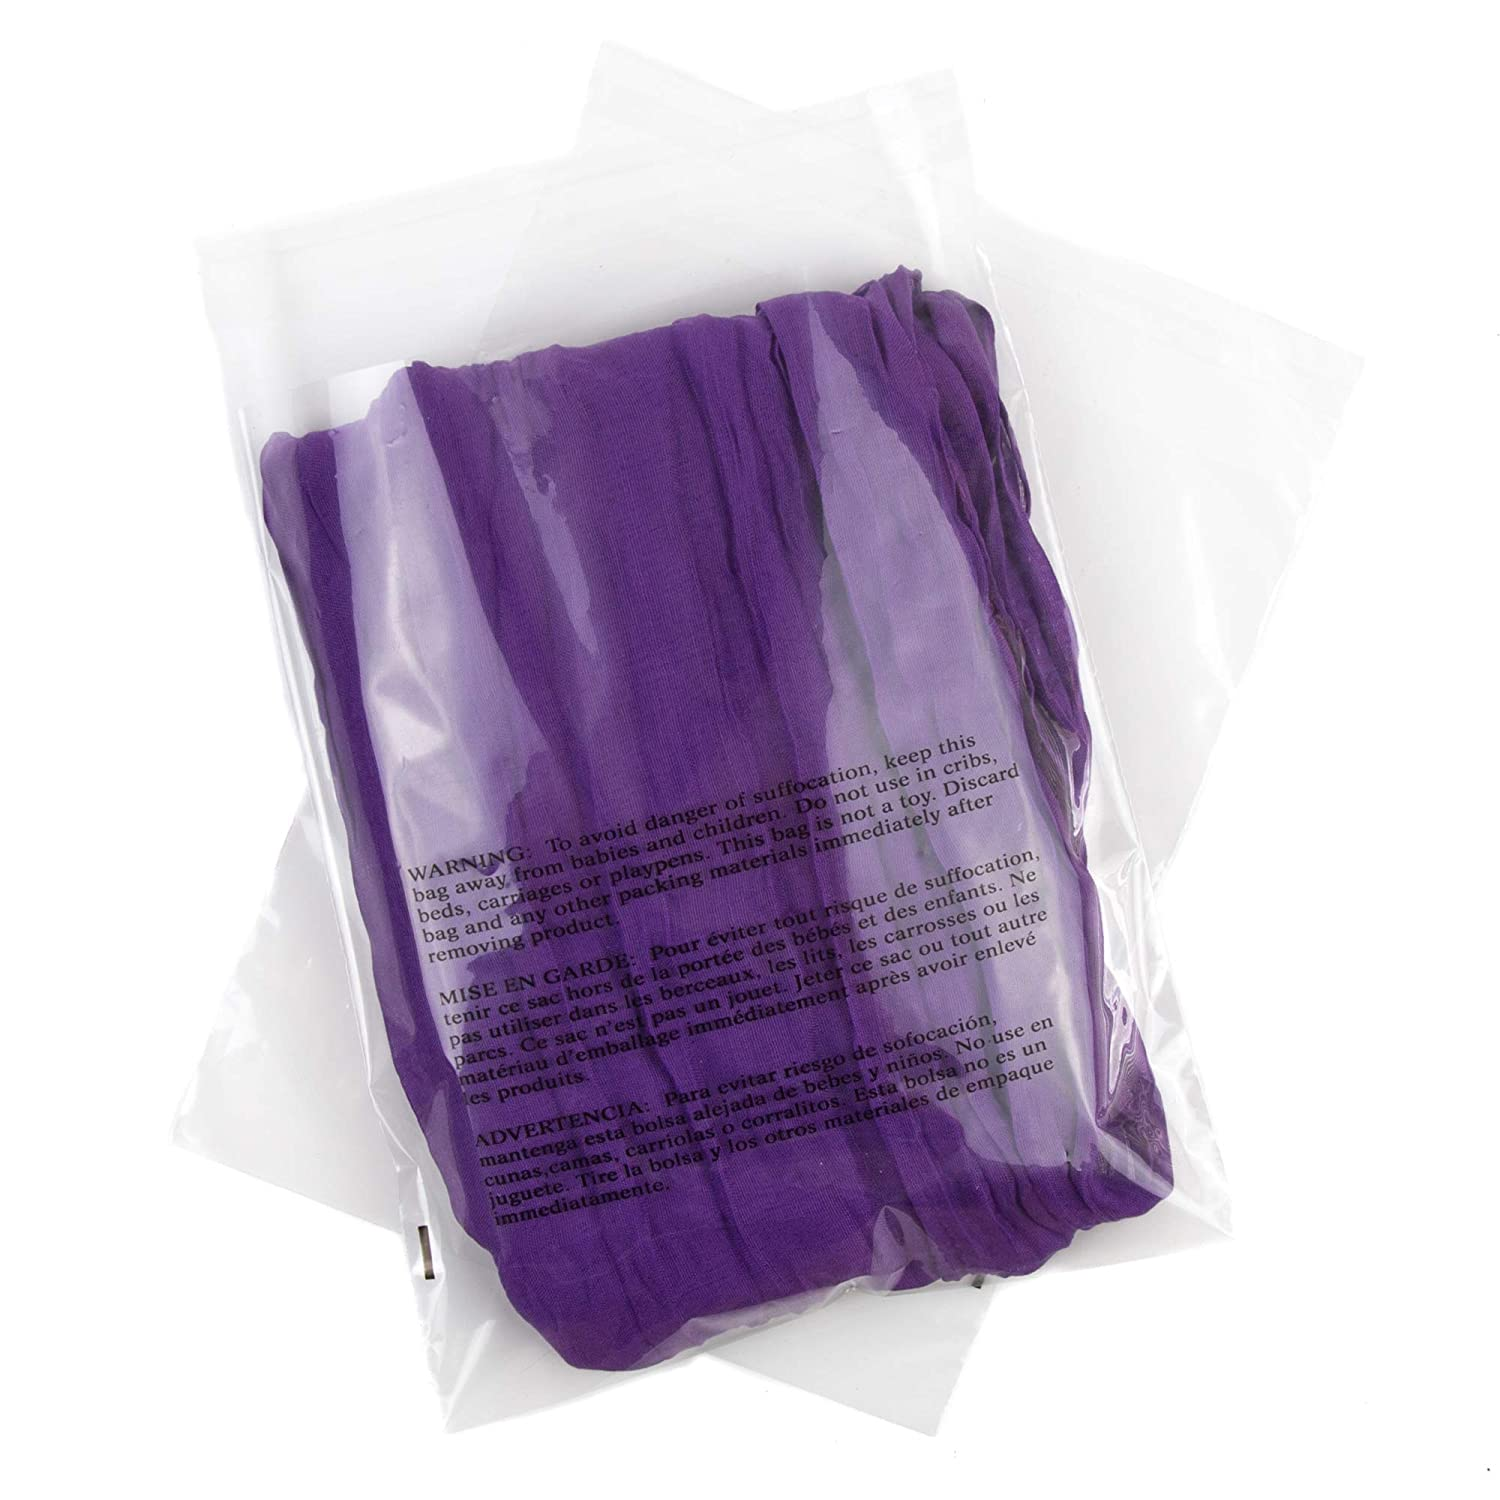 8x10 Poly Bags Suffocation Warning - Extra Strong Seal - 200 Pack - Clear Poly Bags 8x10 - Poly Bag 8x10-8 x 10 Poly Bags - Retail Supply Co